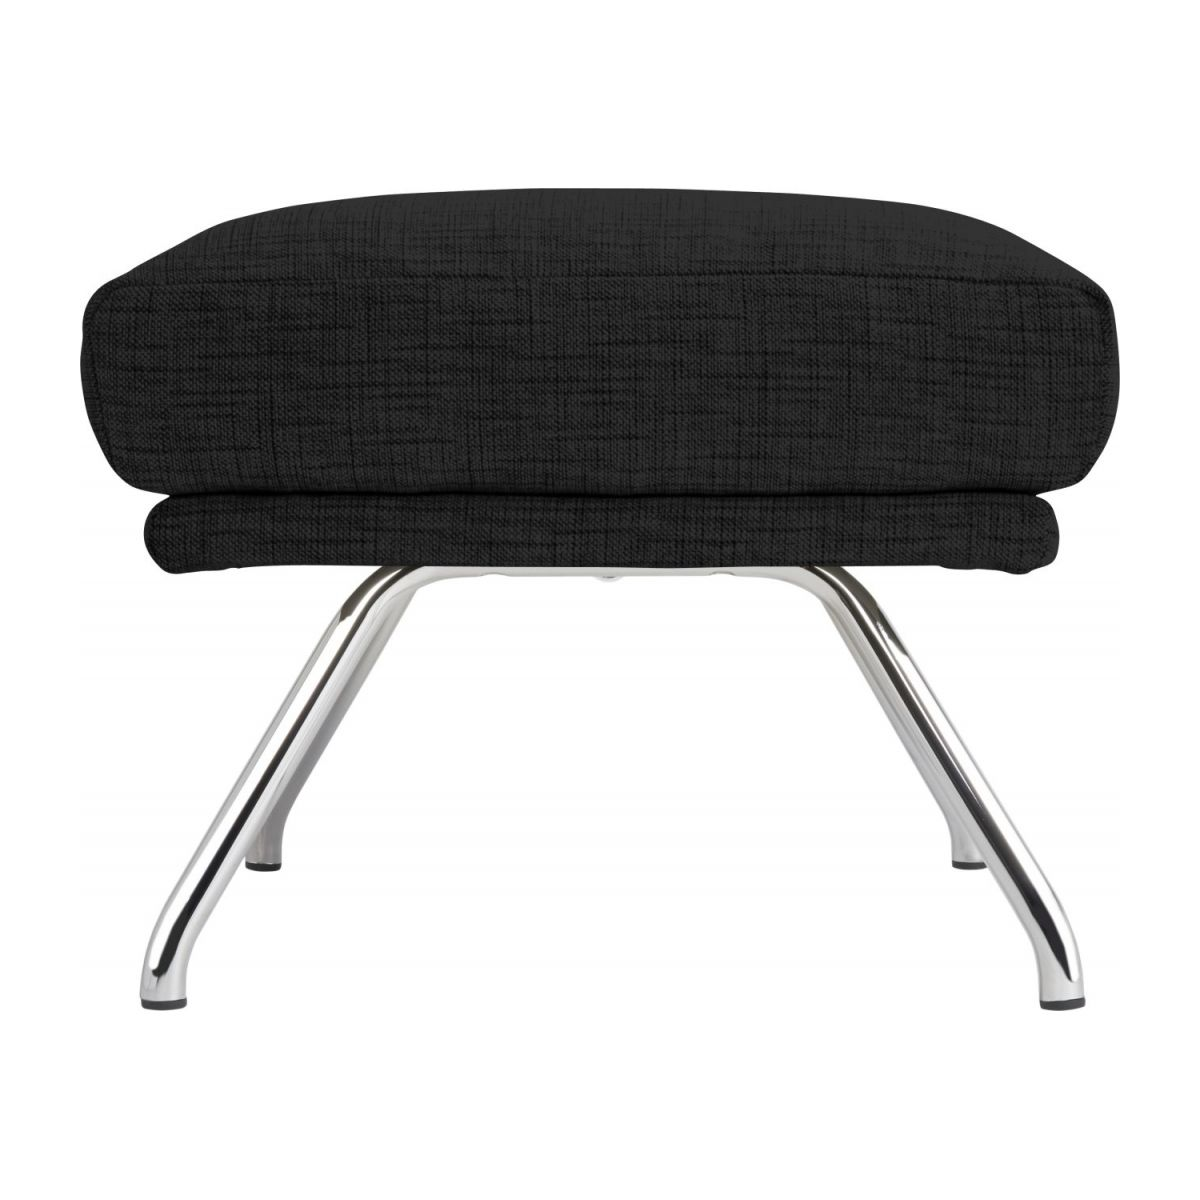 Footstool in Ancio fabric, nero with chromed metal legs n°4